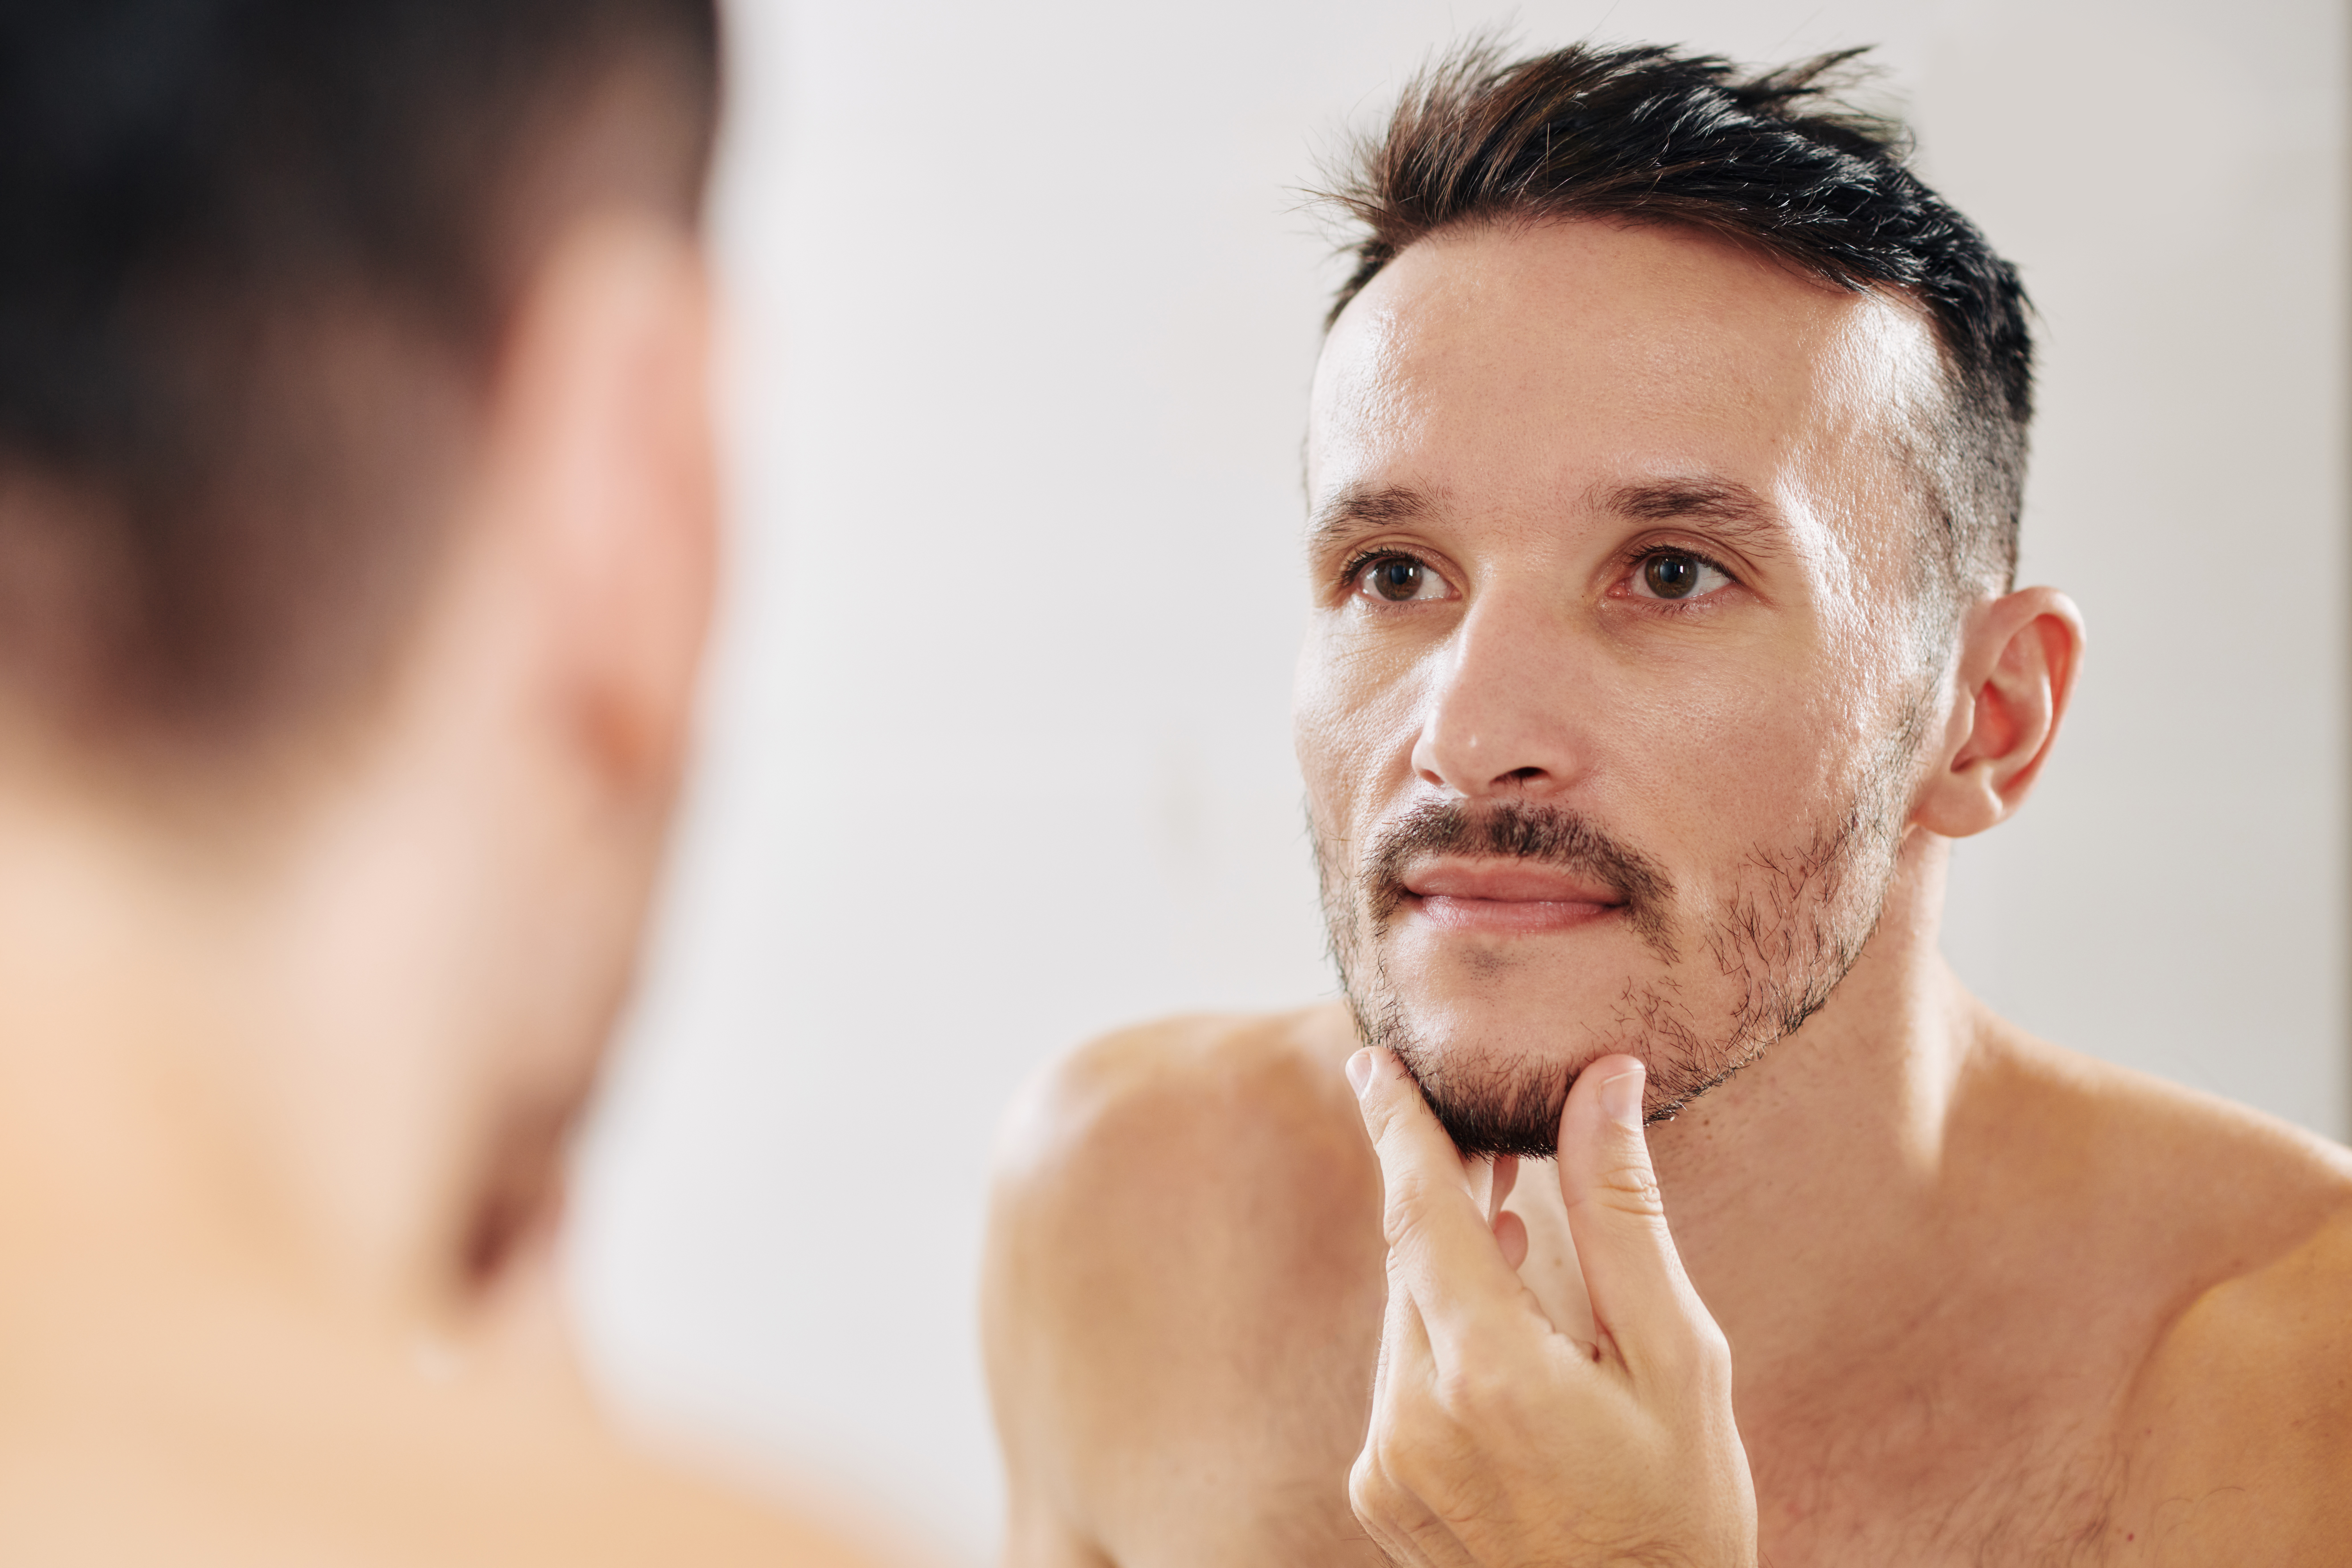 A Handsome Man stokes his refined chin in a mirror